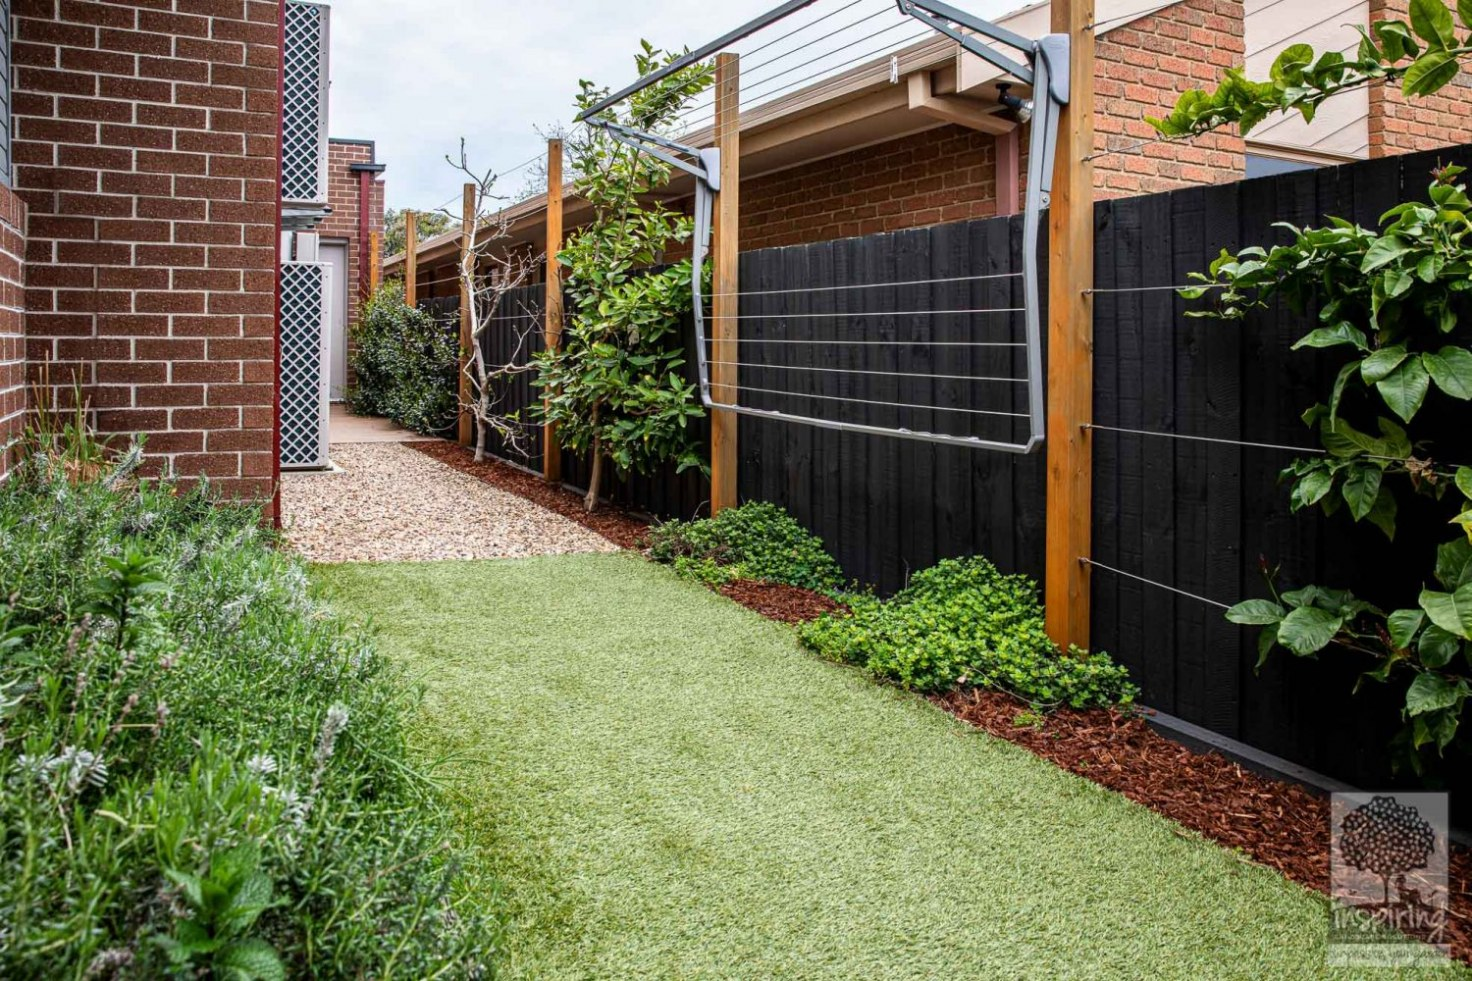 View of side area at the back of the property in Glen Waverley landscape design by Parveen Dhaliwal